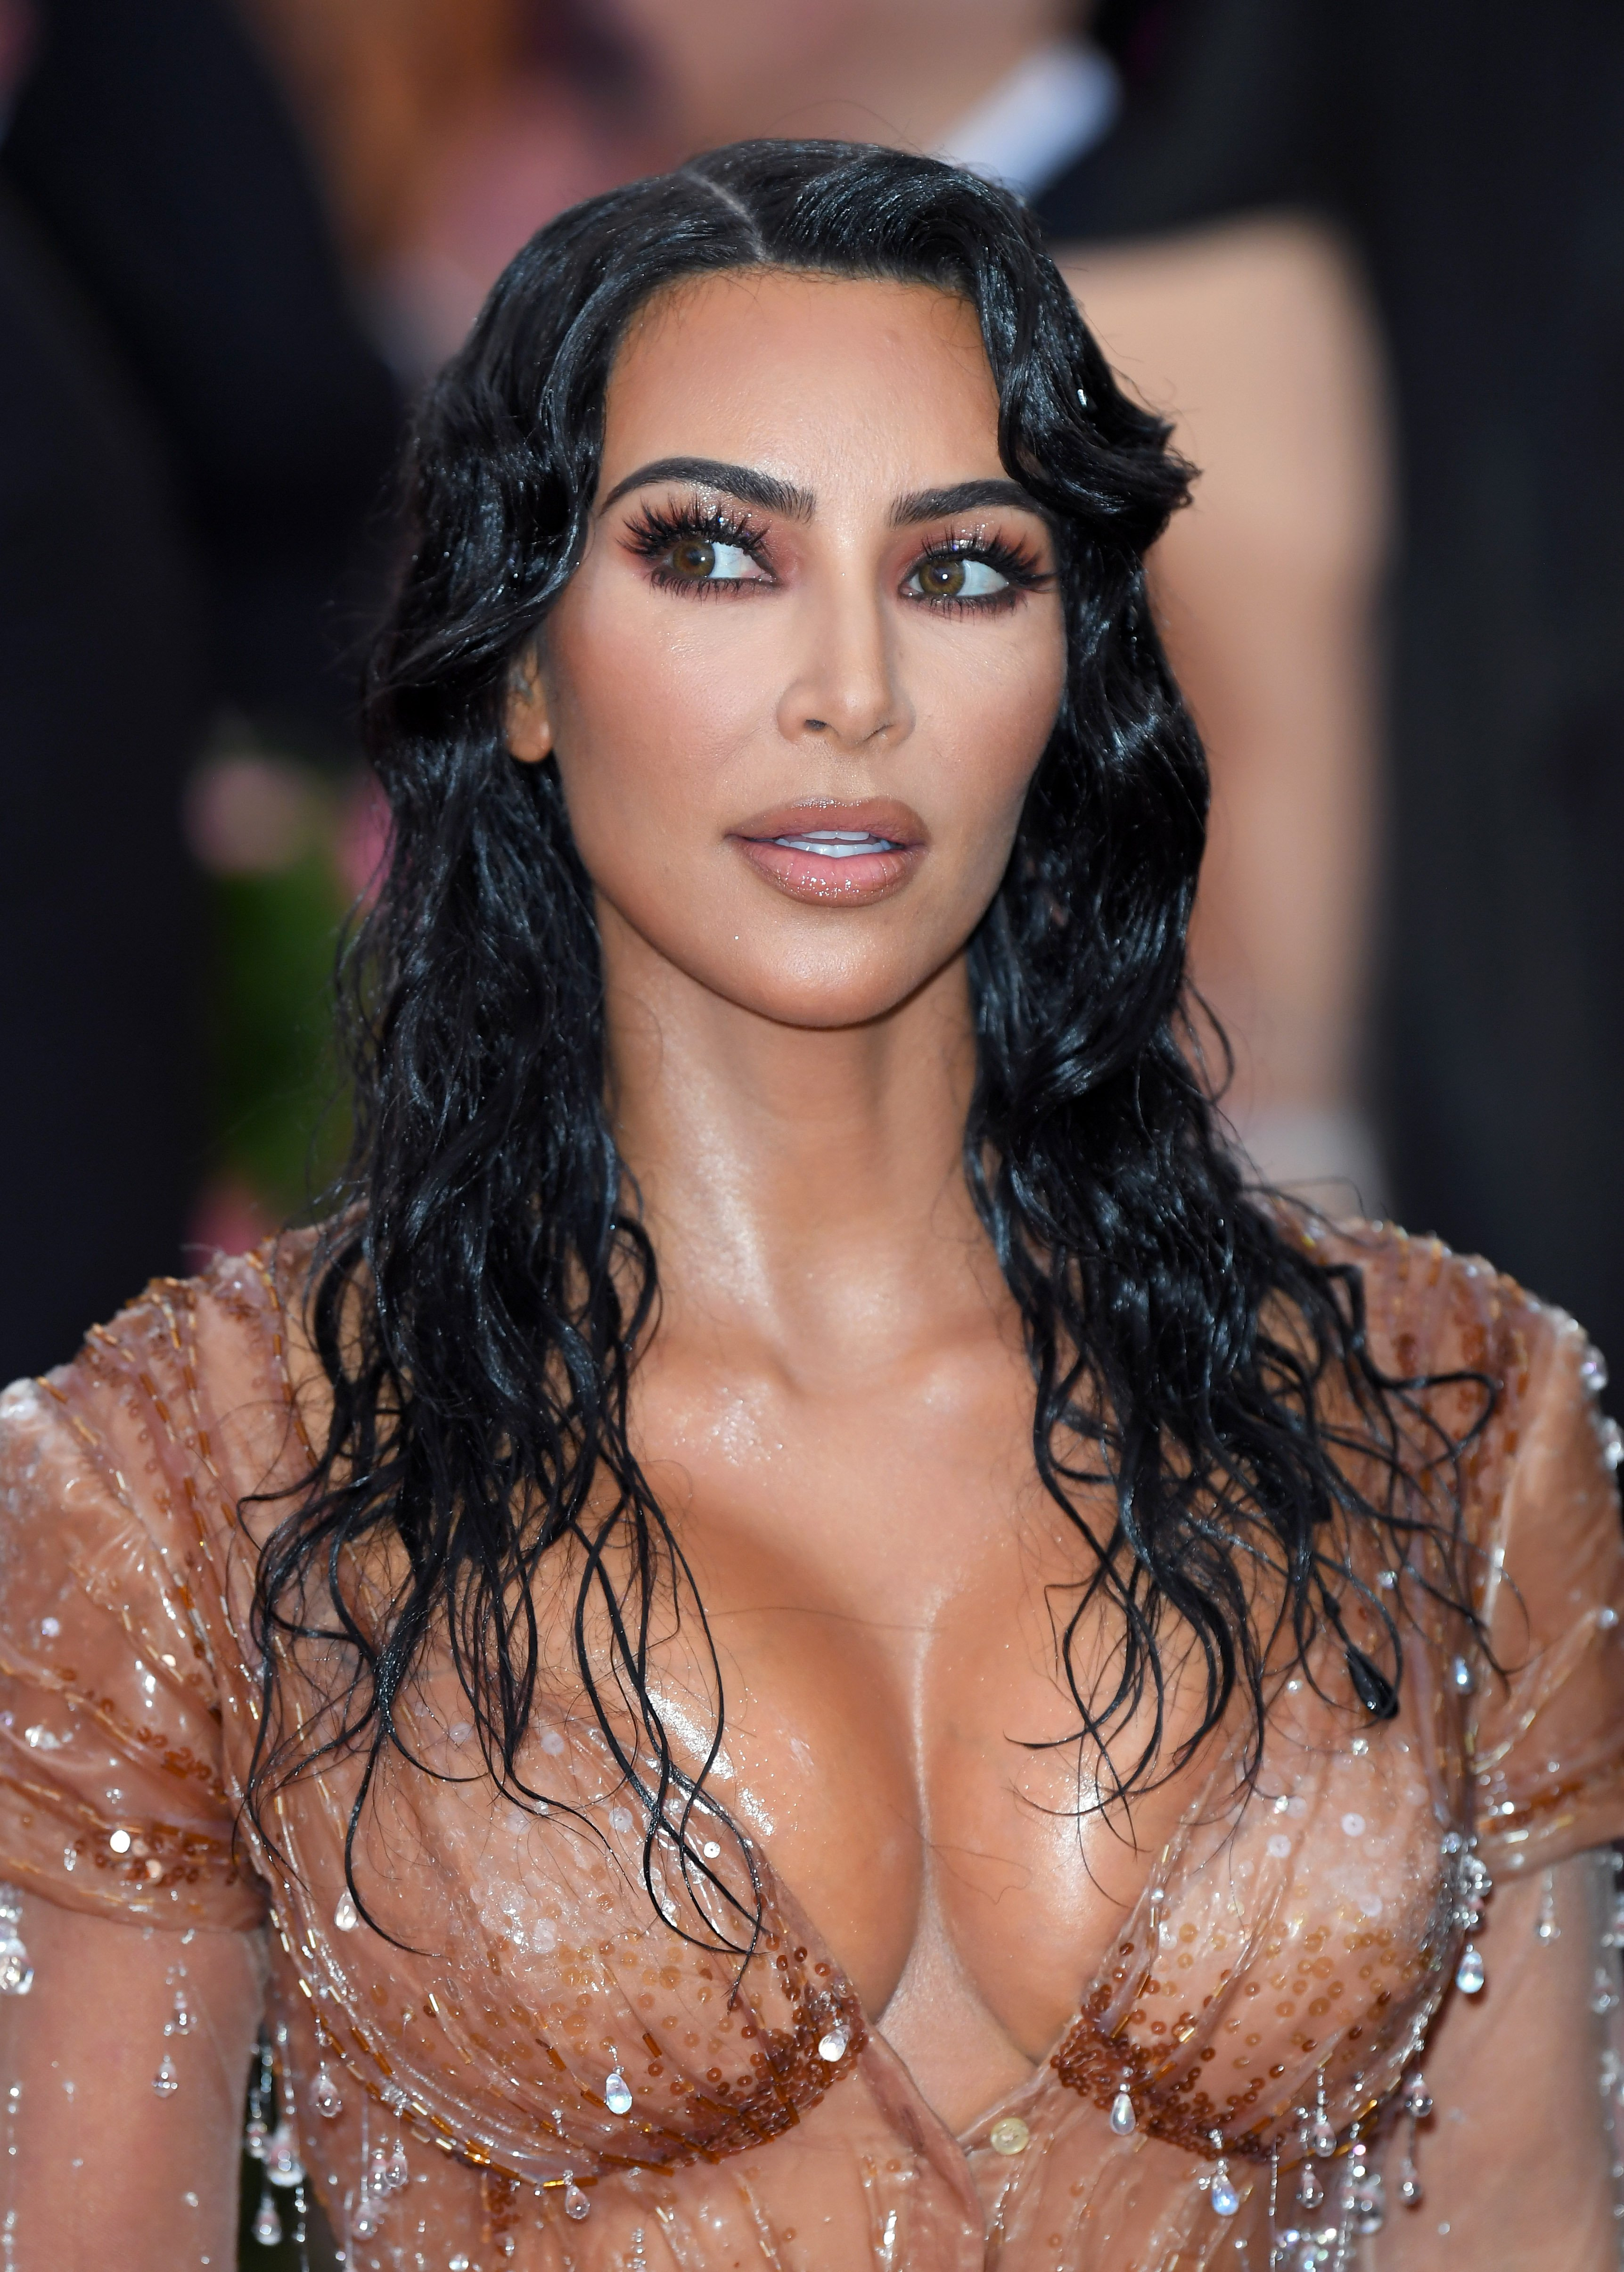 Kim Kardashian West attends the 2019 Met Gala in New York City on May 6, 2019 | Photo: Getty Images